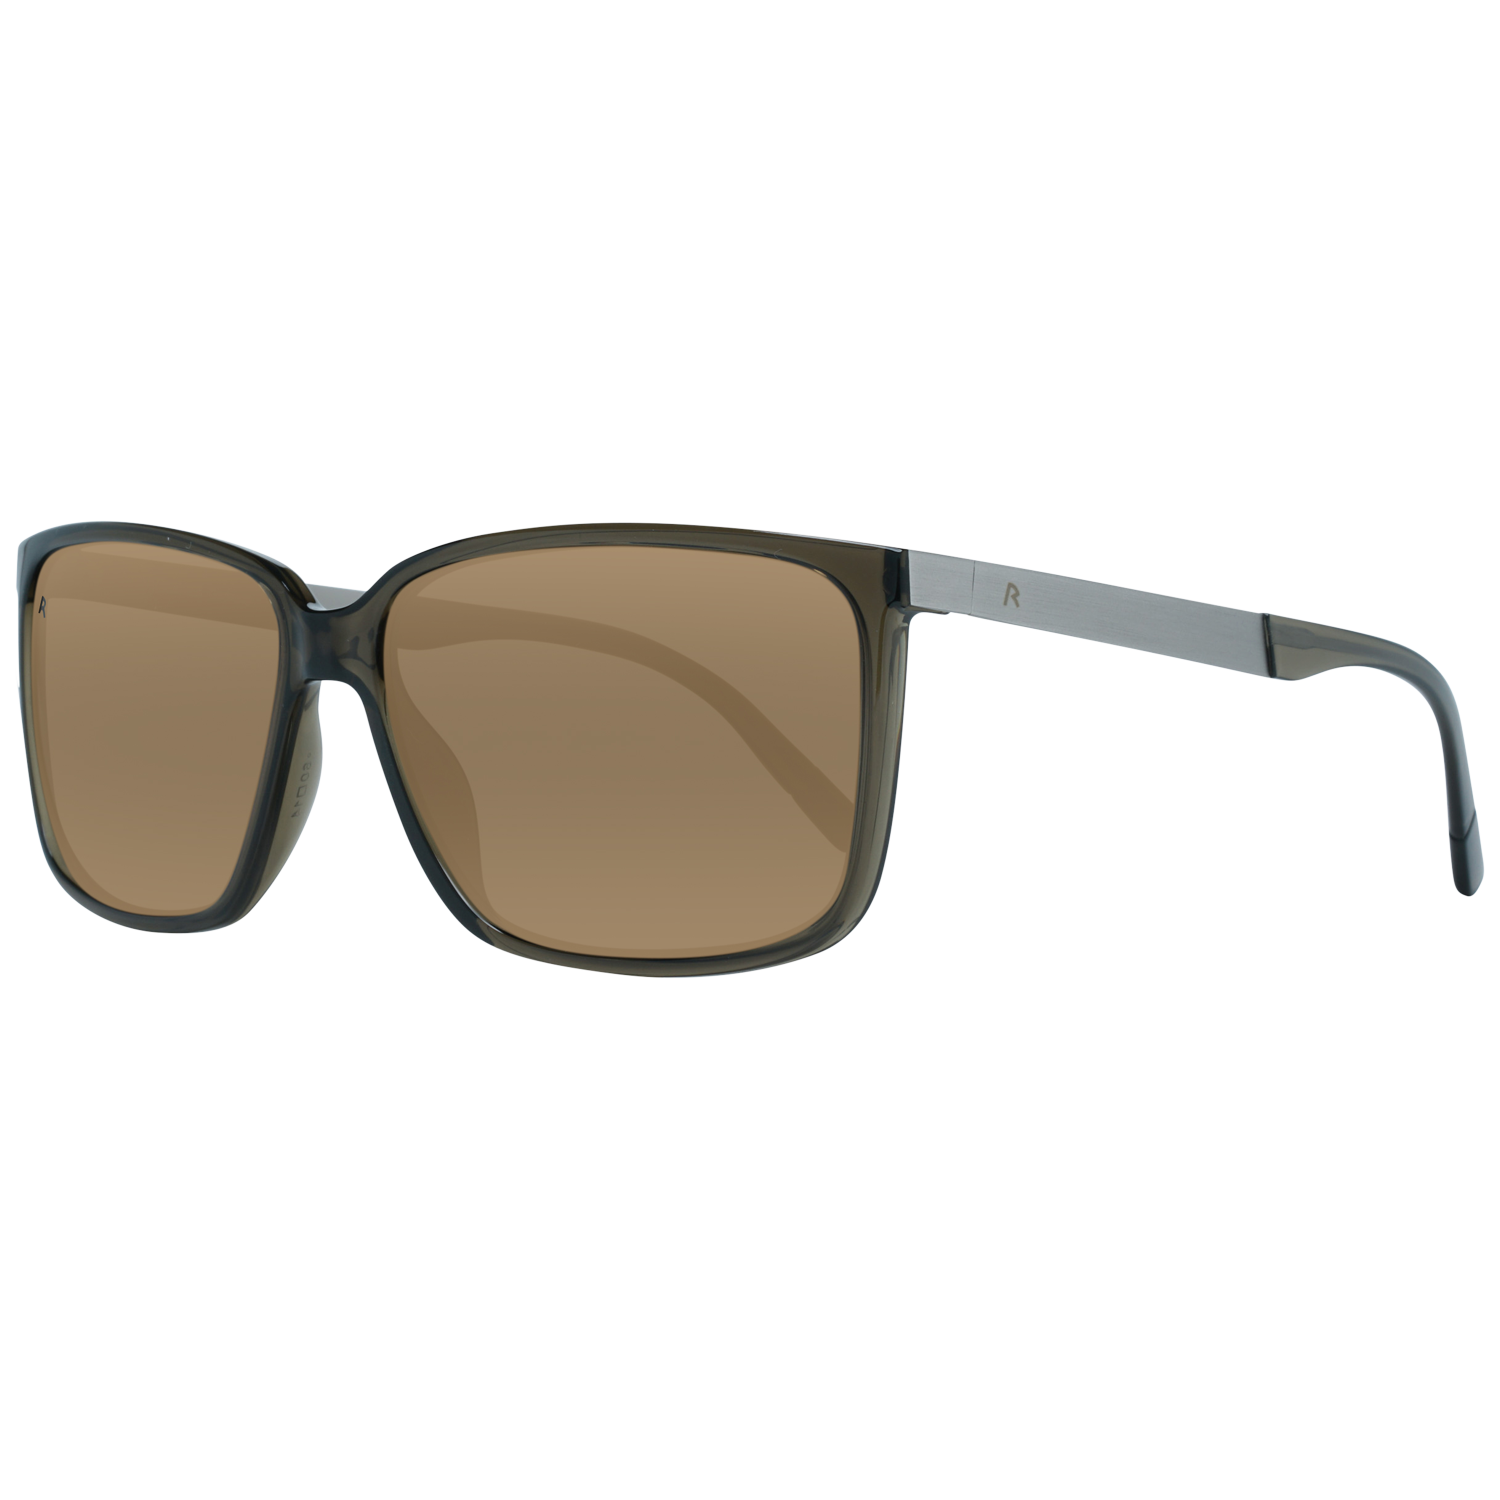 Rodenstock Sunglasses R3295 B 60 Brown